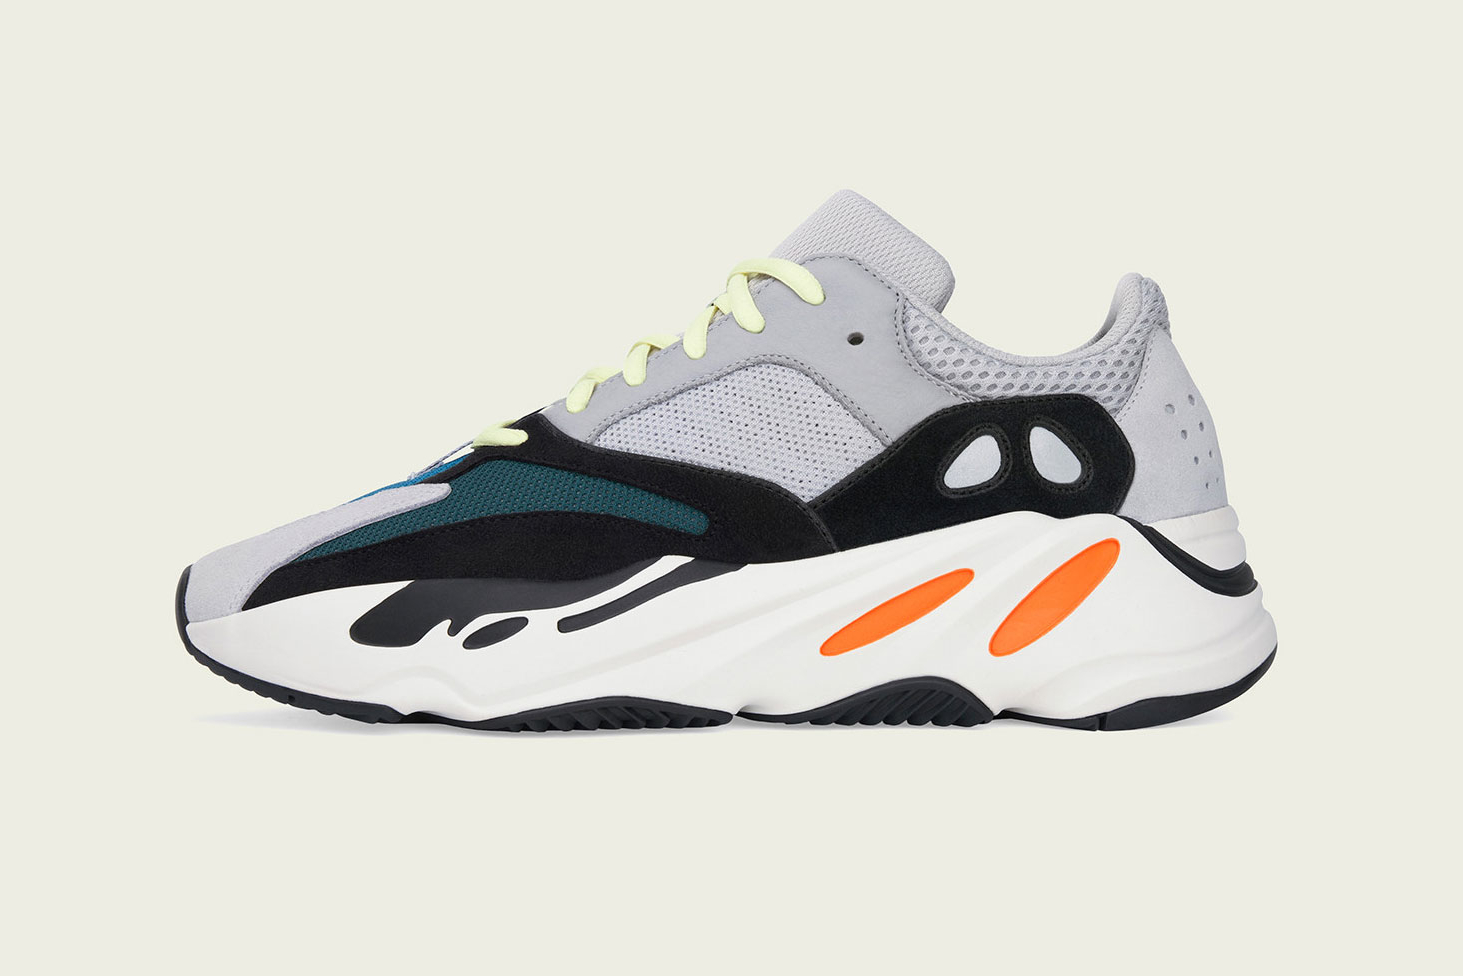 1f7da53b0545b YEEZY BOOST 700 Official Restock Store List